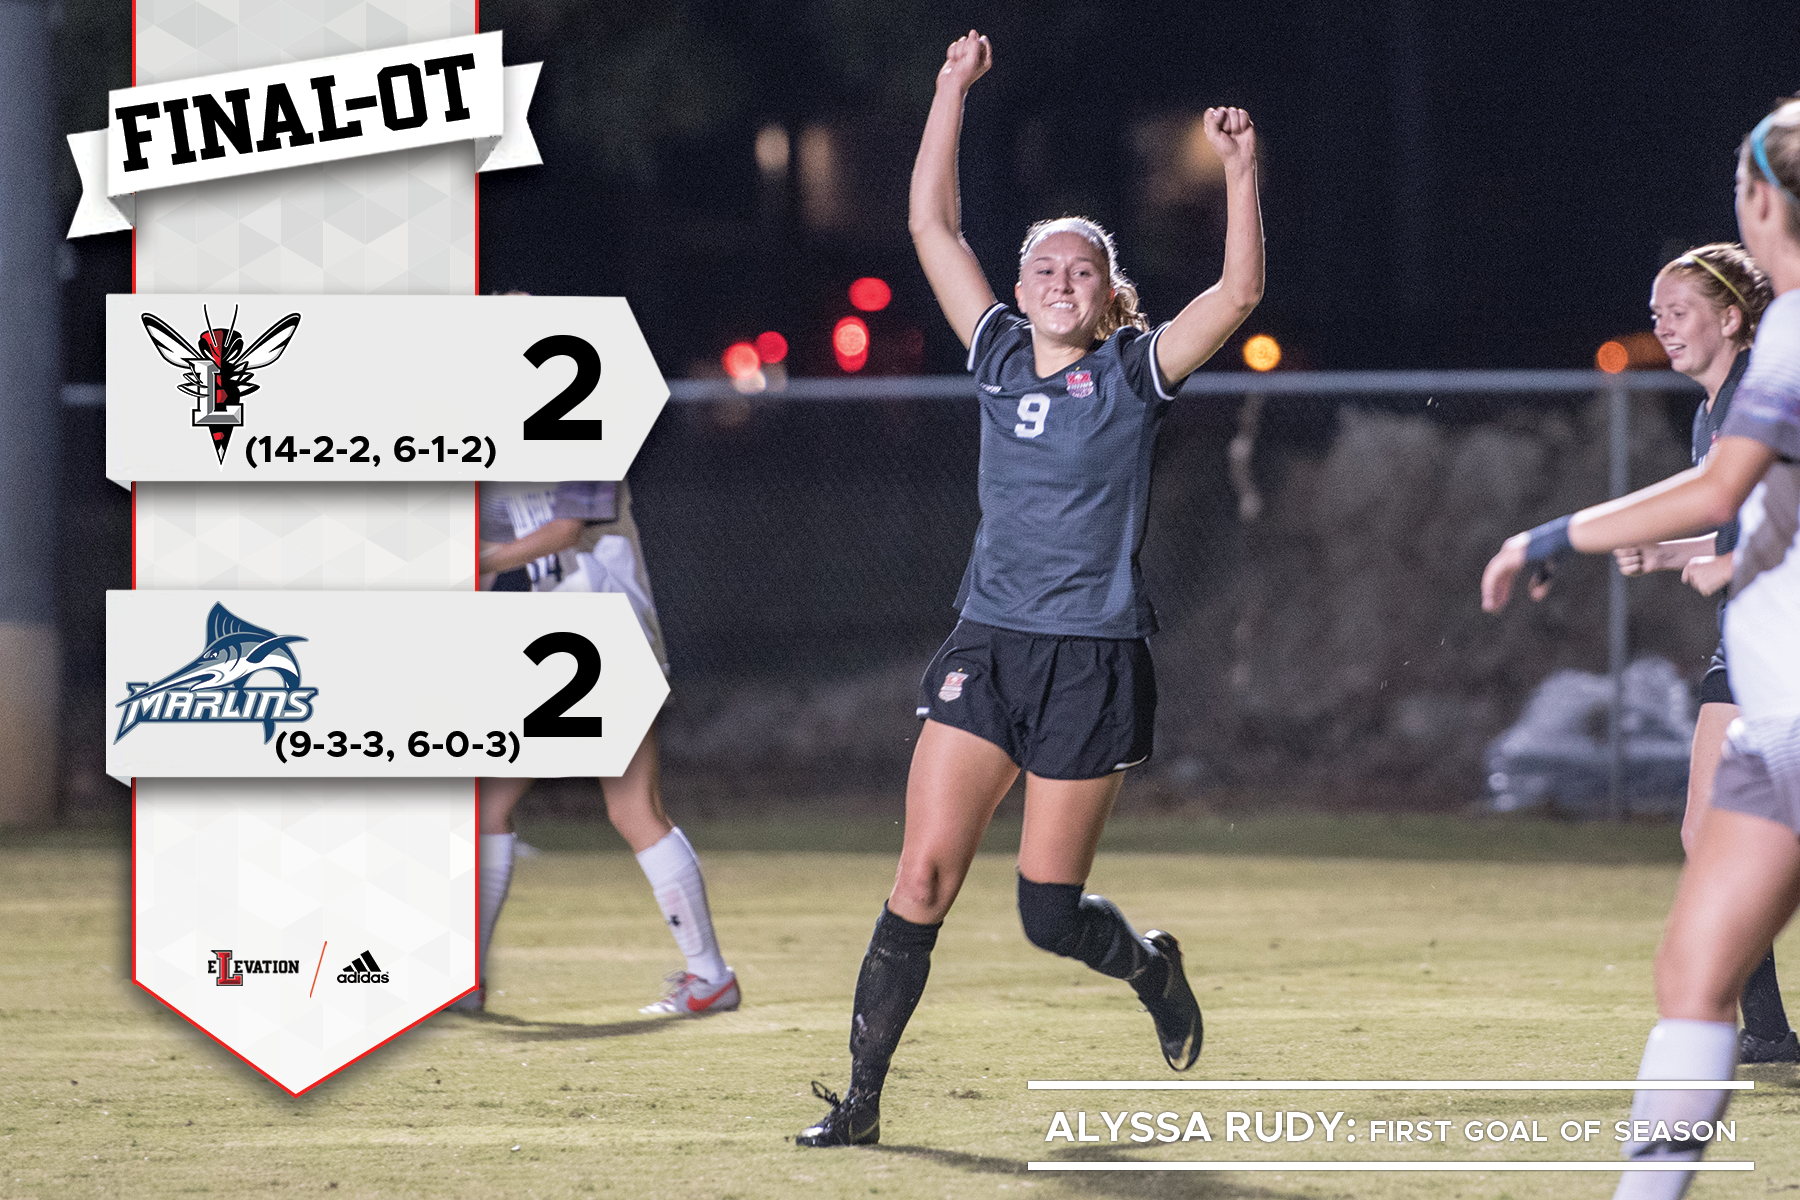 Alyssa Rudy with her arms up celebrating a goal. Graphic on right showing 2-2 final score and team logos and records.